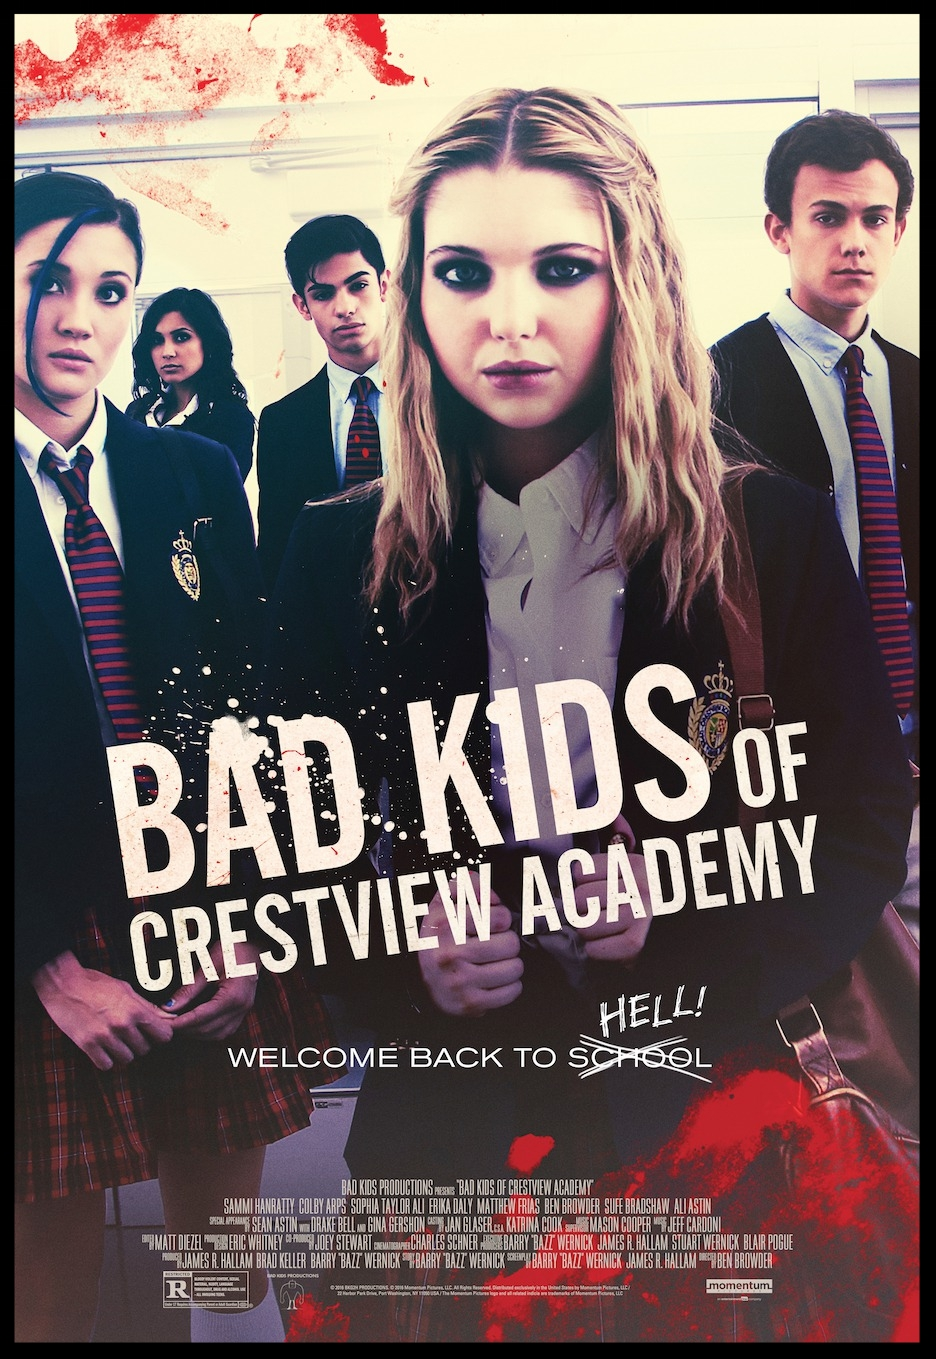 bad_kids_of_crestview_academy poster.jpg